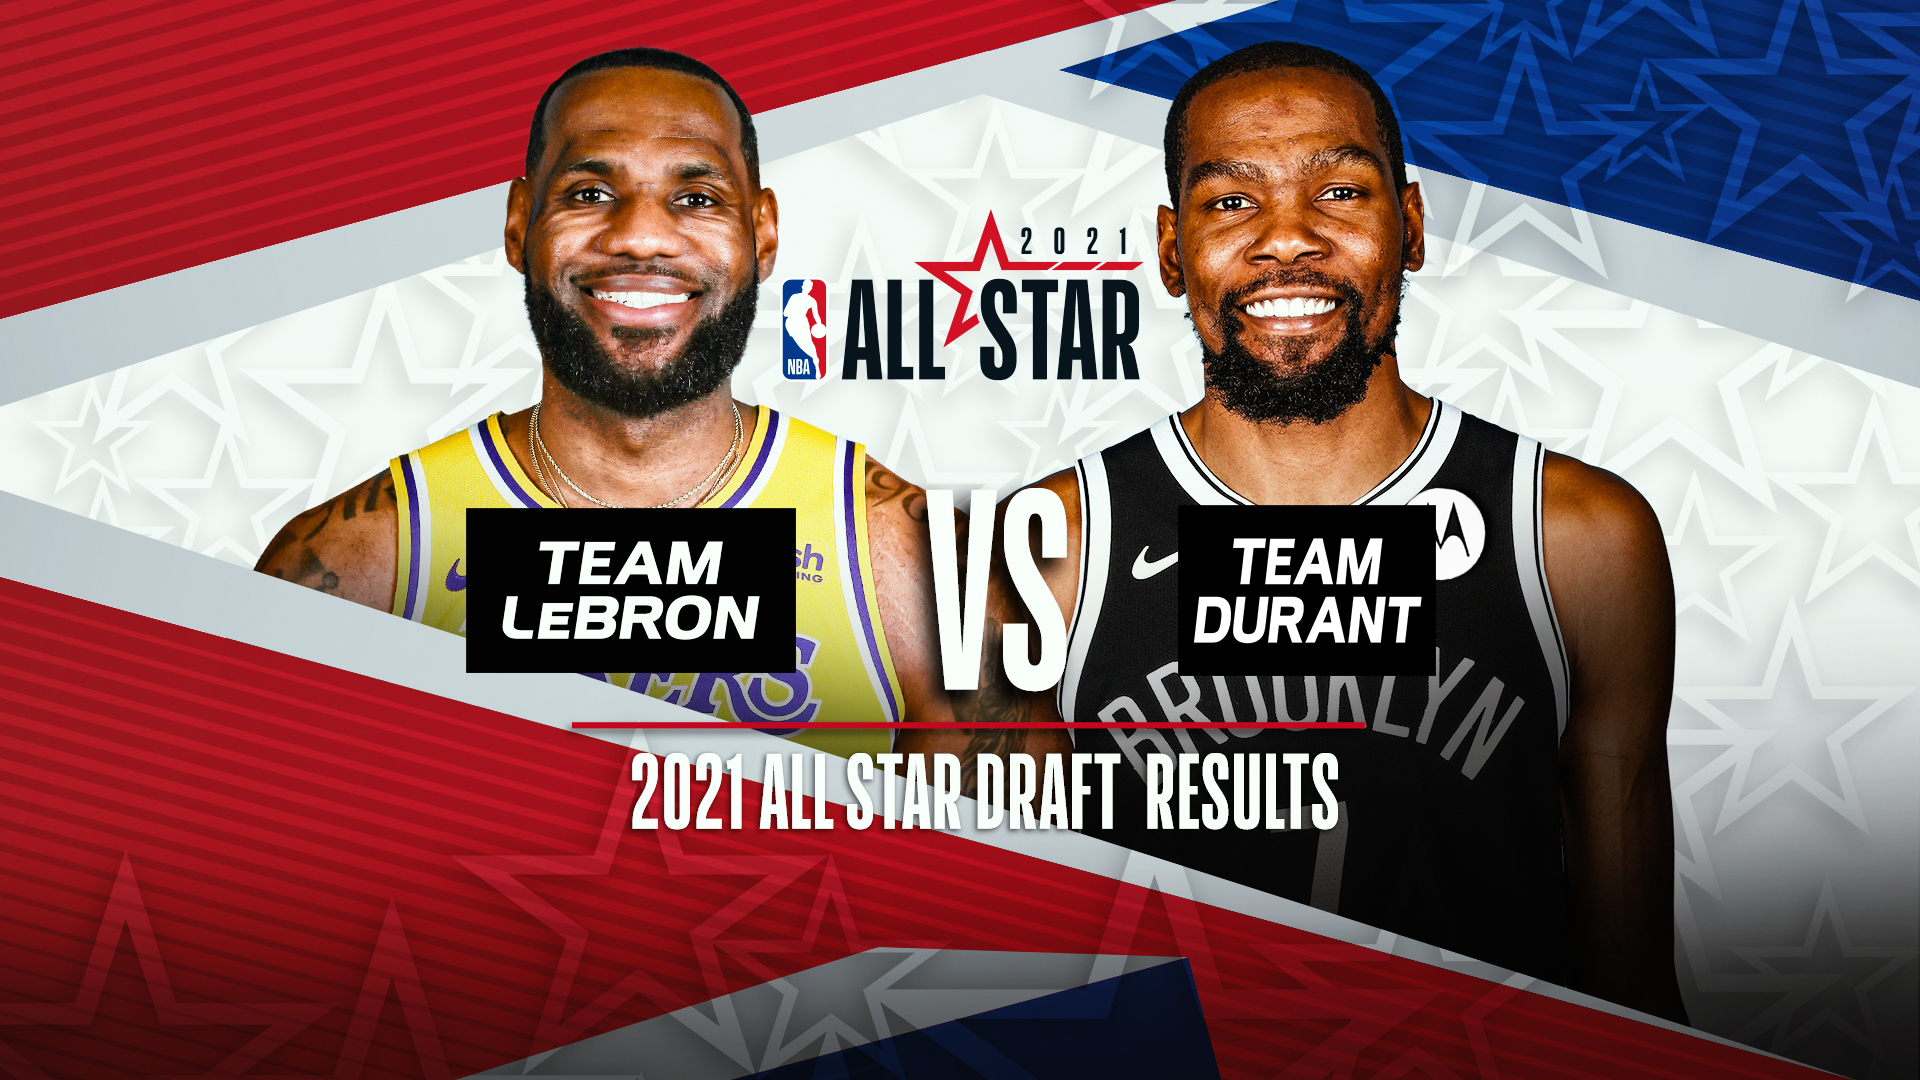 LeBron, Durant draft rosters for 2021 NBA All-Star Game